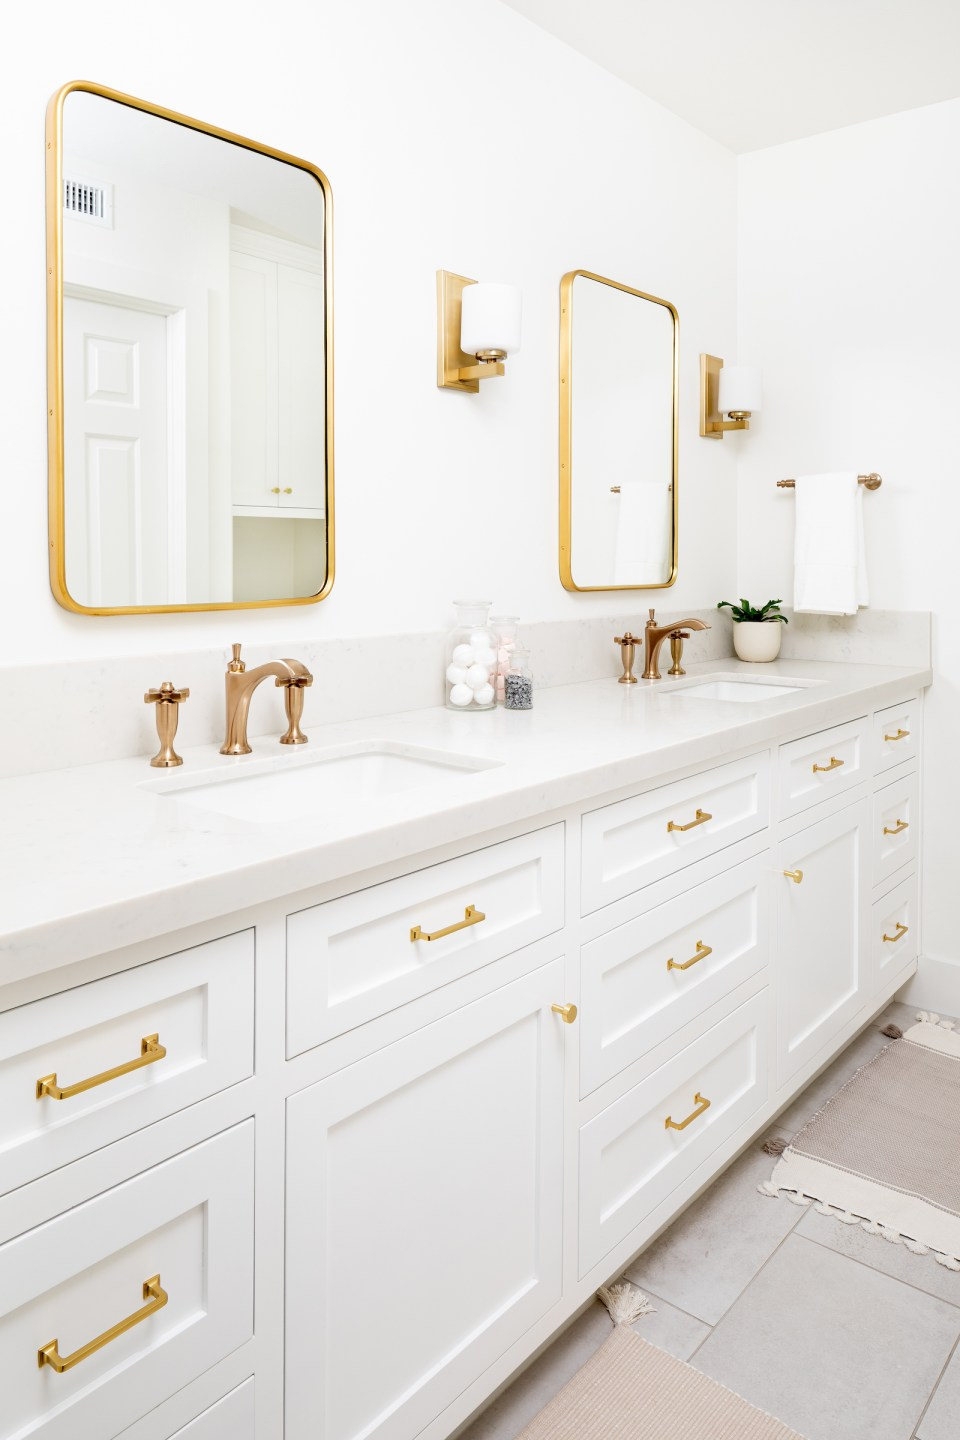 Bright white cabinets and countertops are accented by brass faucets, fixtures, sconces, and mirrors